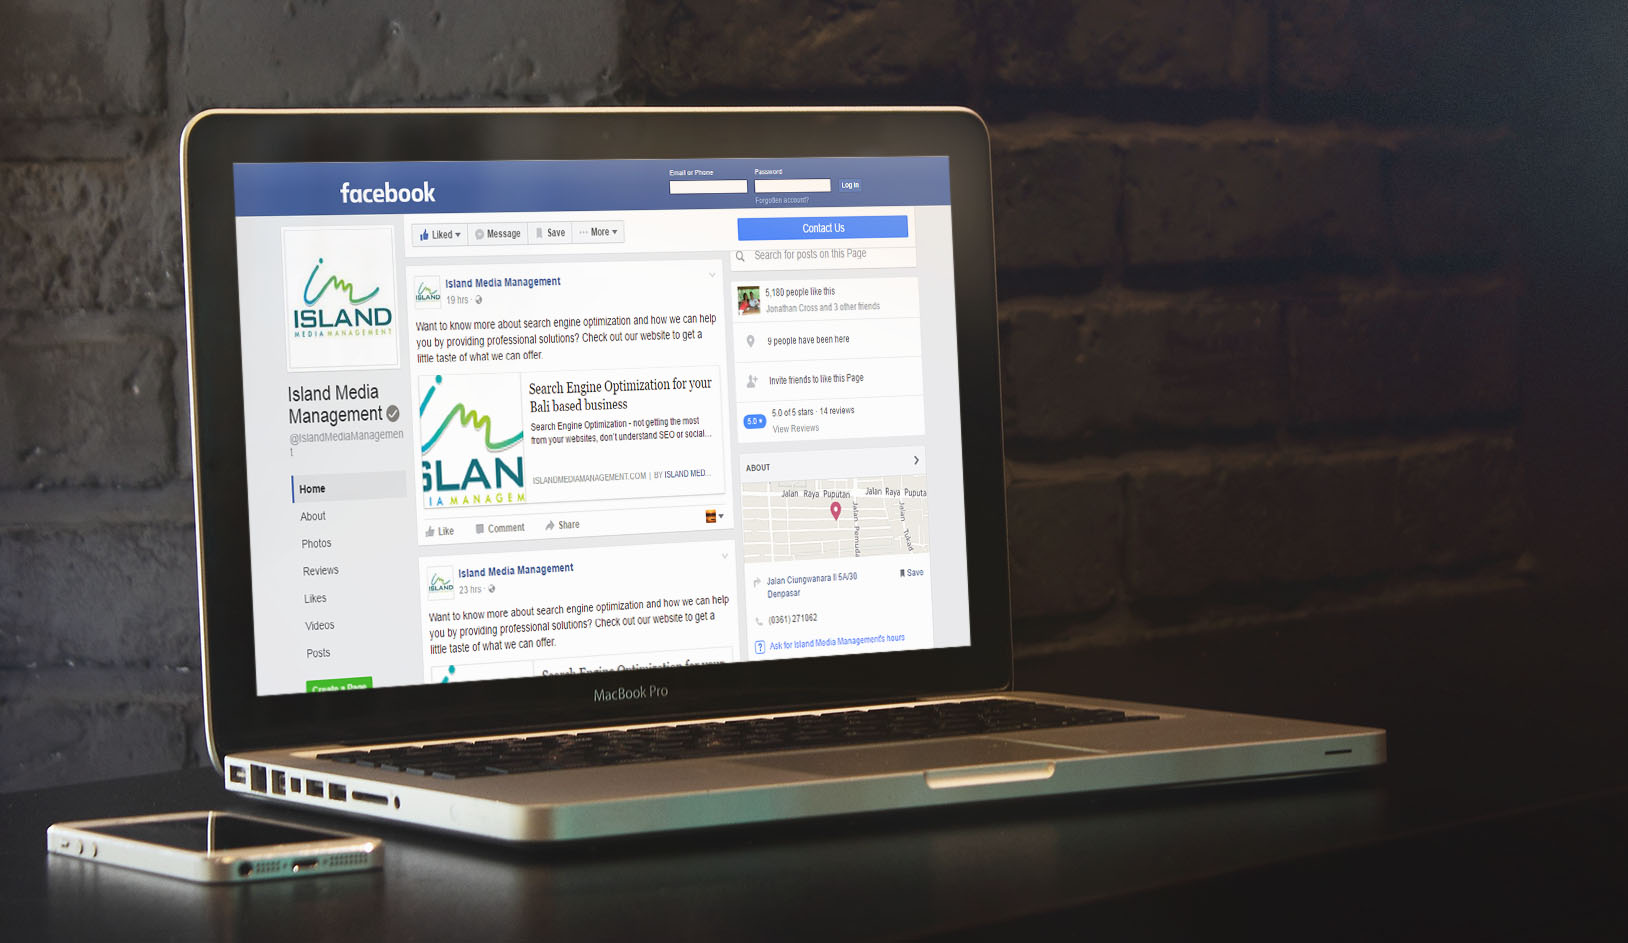 promote your brands and services - How To Increase Facebook Page Reach